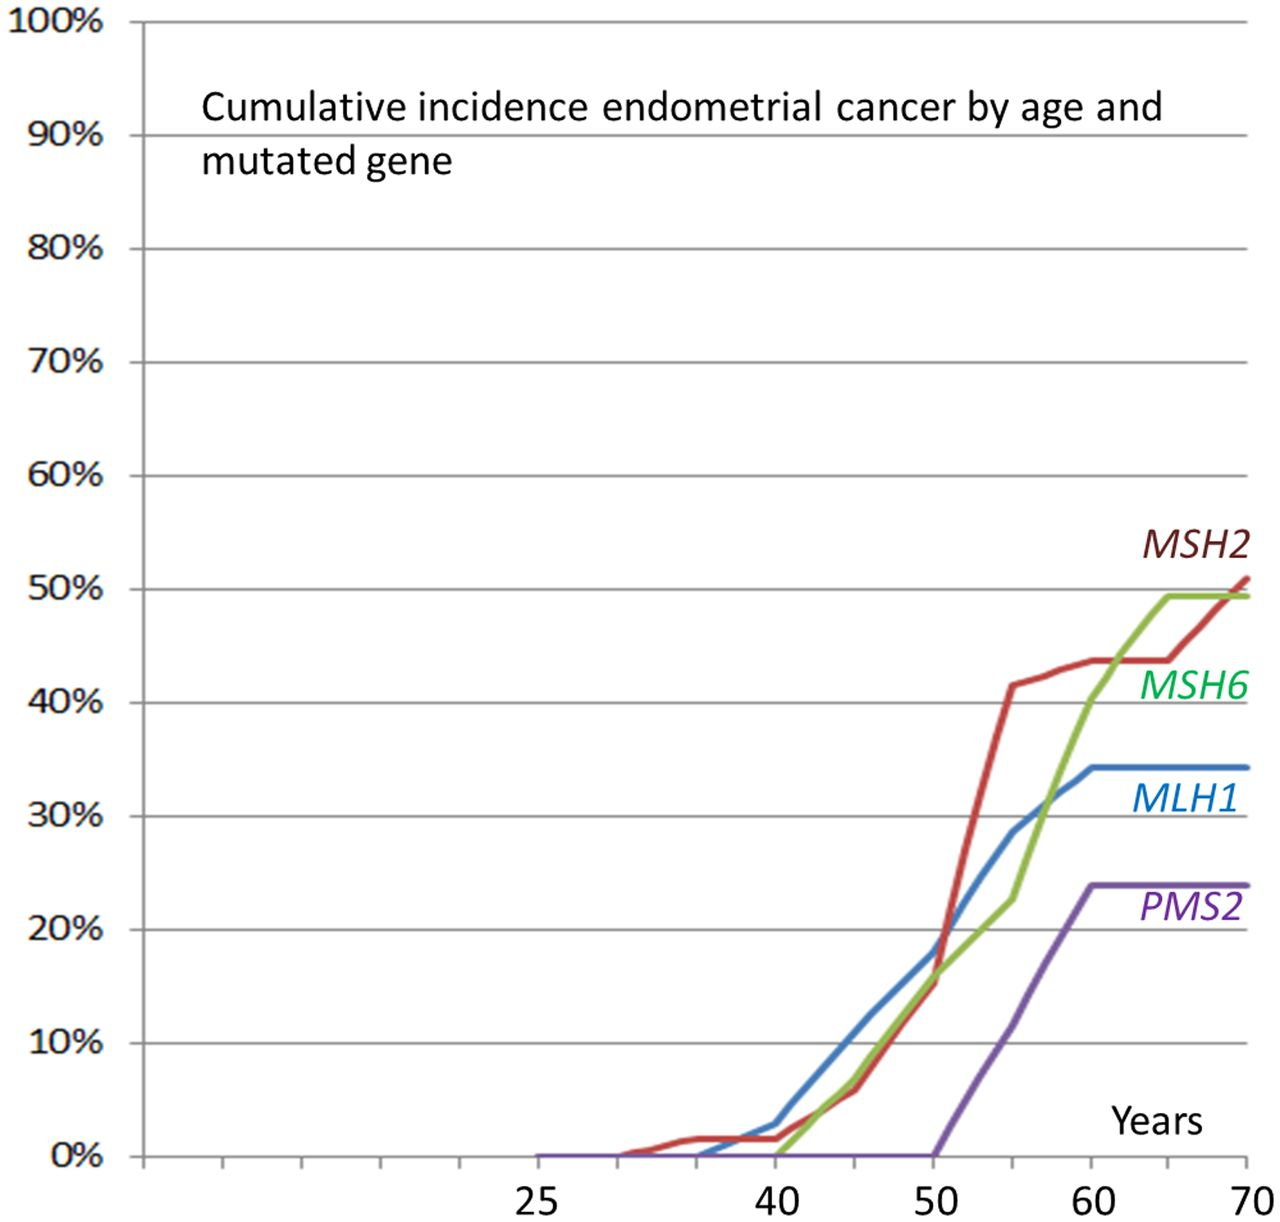 Cancer incidence and survival in Lynch syndrome patients